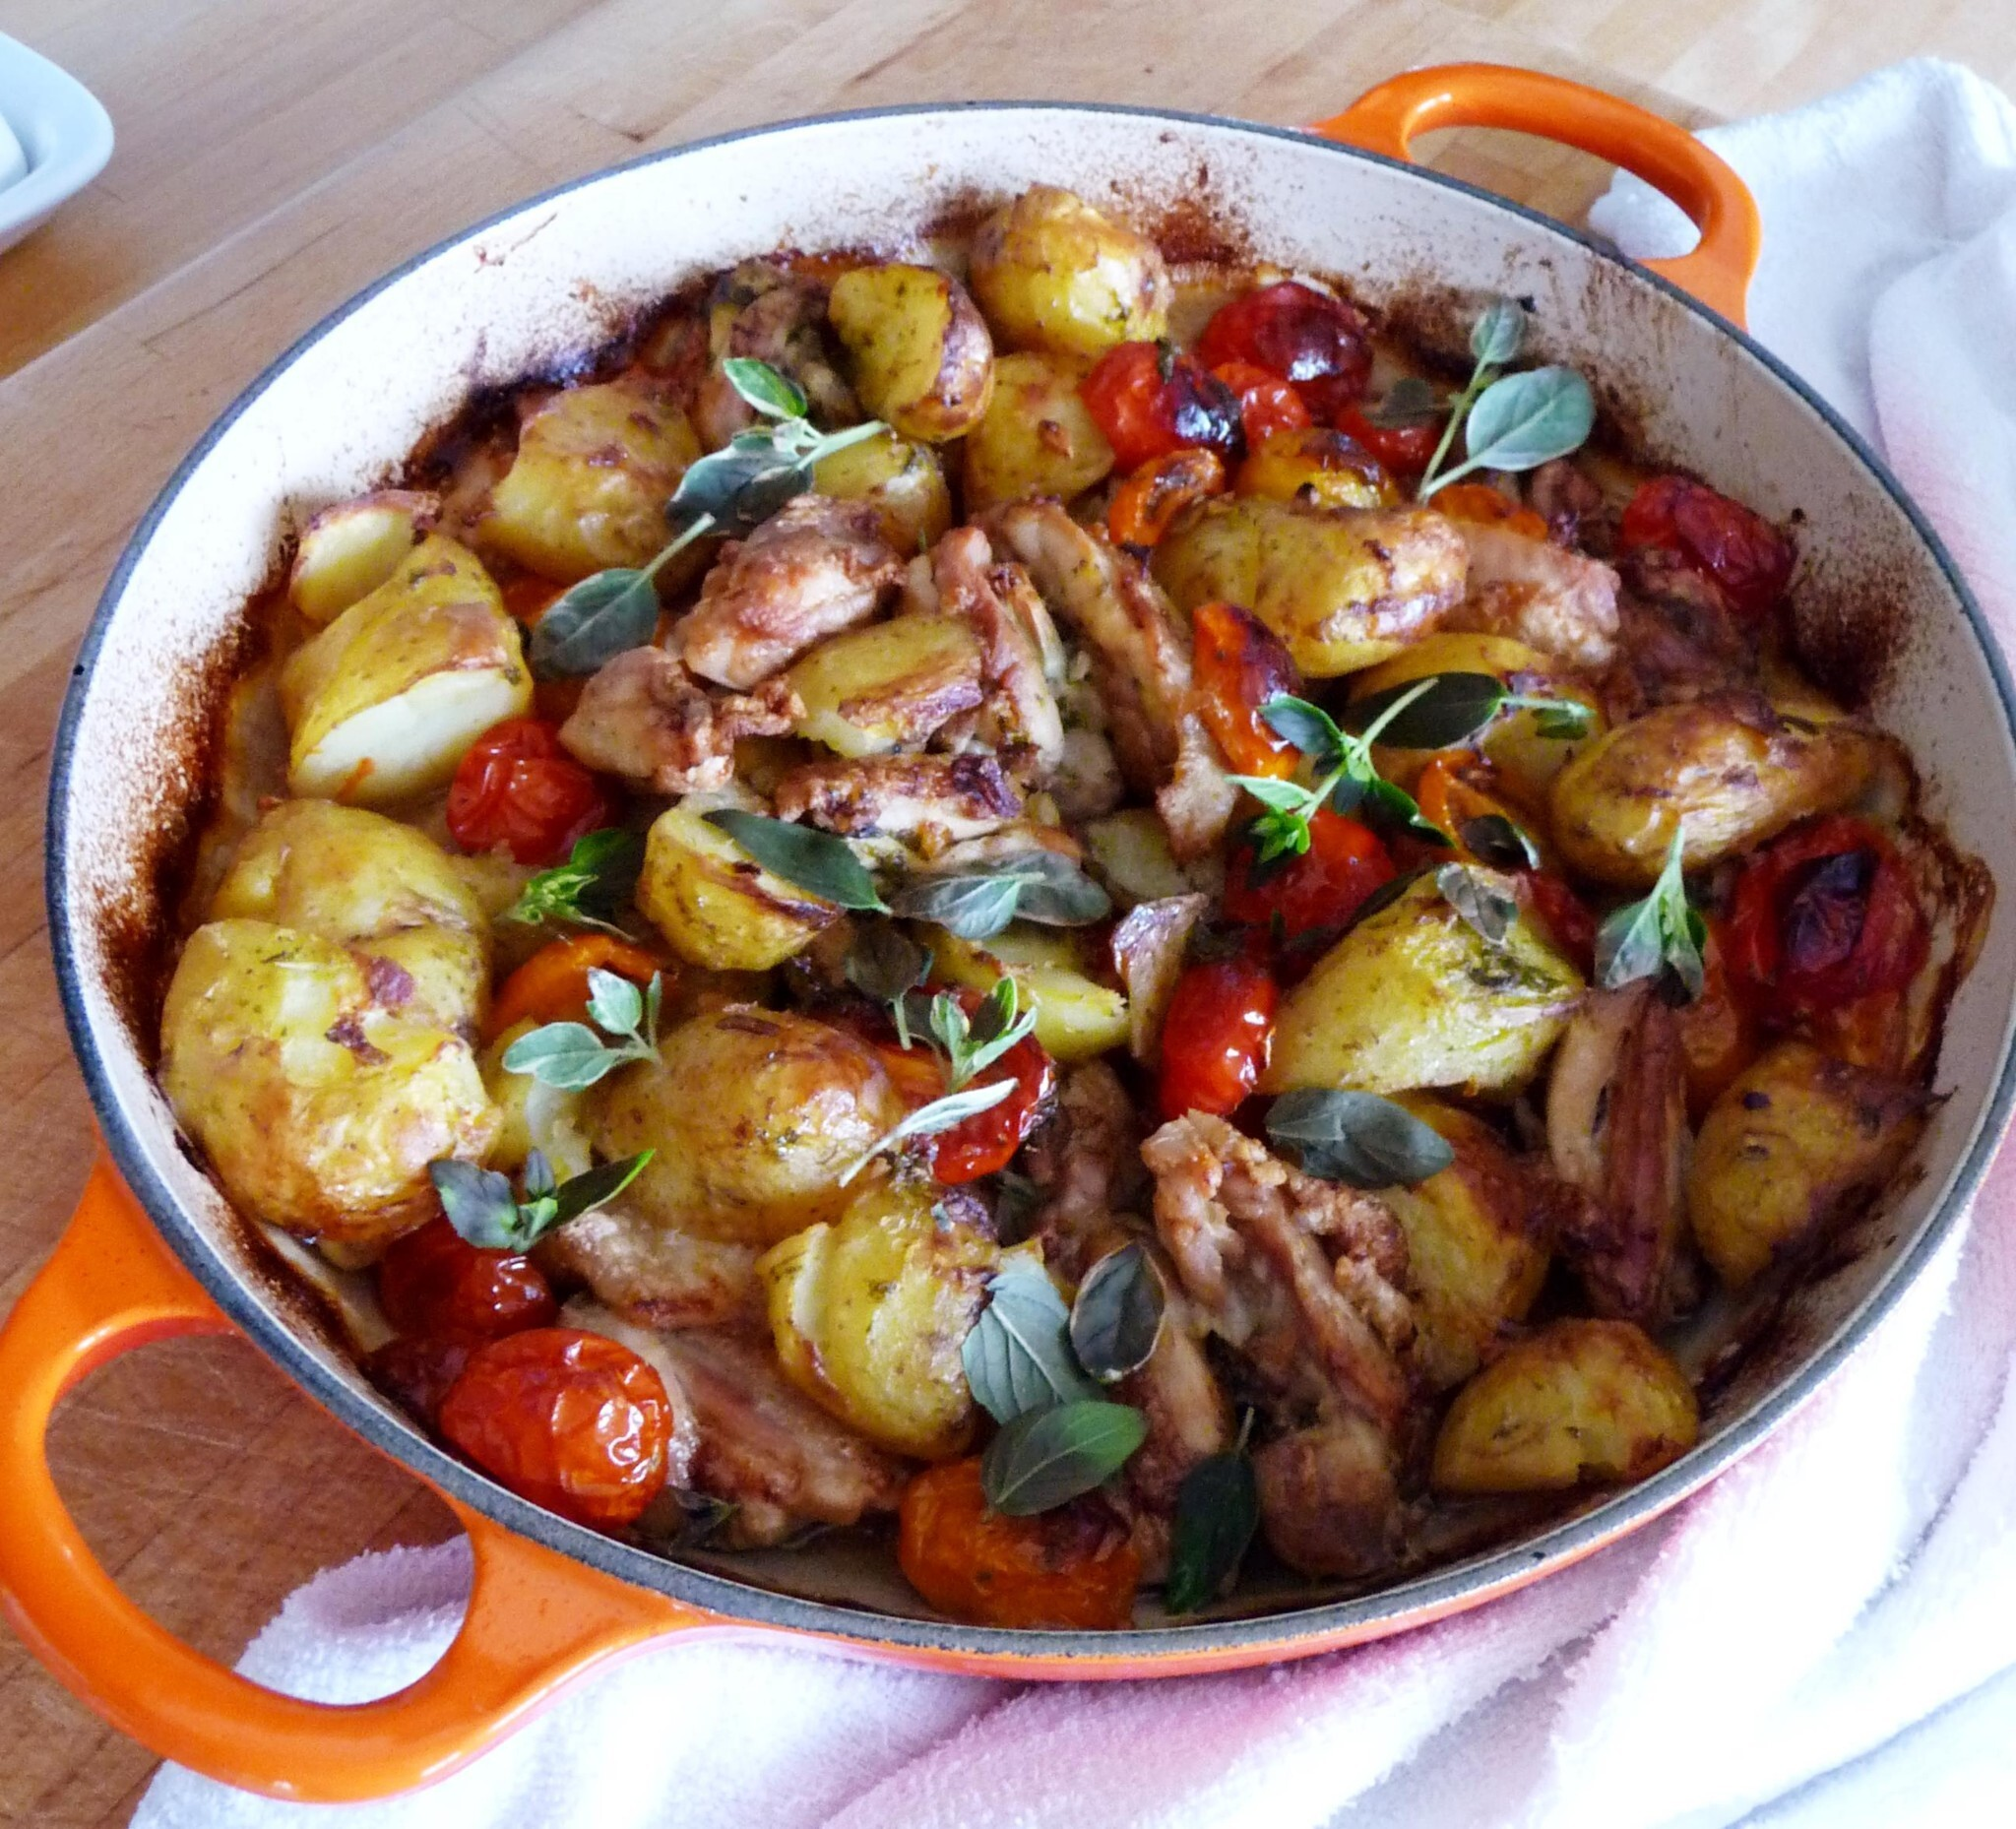 Crispy chicken thighs, roasted tomatoes and crushed new potatoes